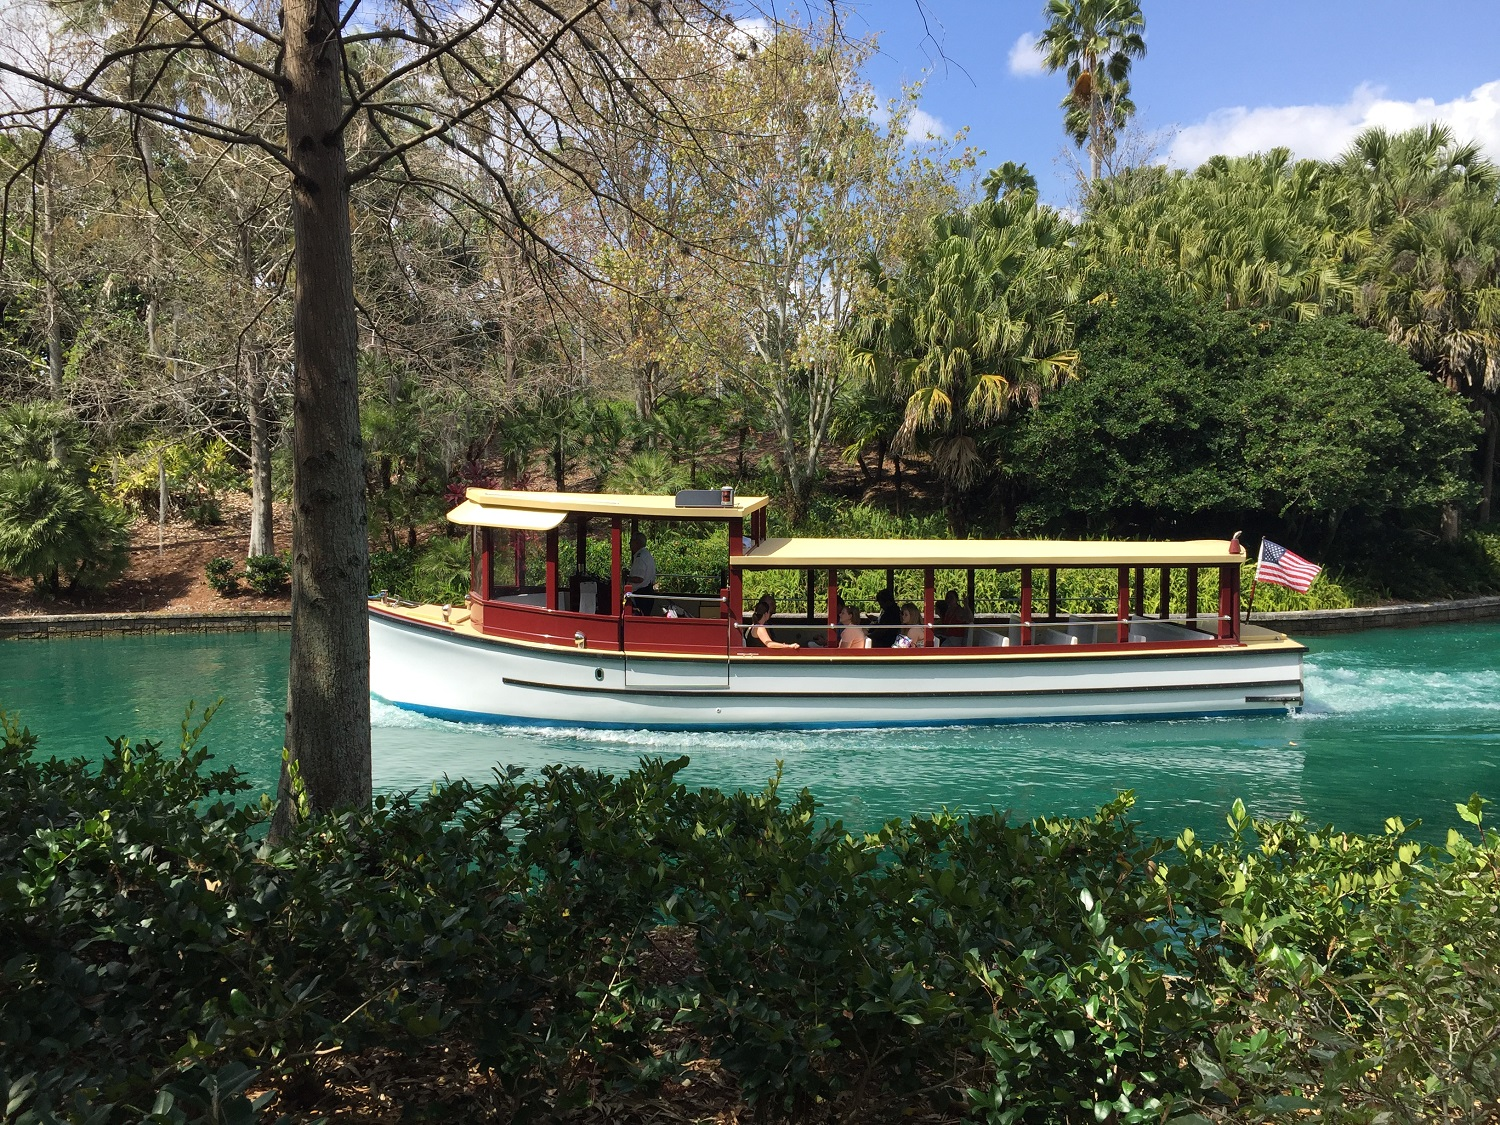 Other on-site hotels at Universal Orlando Resort have a free water taxi service to take guests from the hotels to CityWalk.